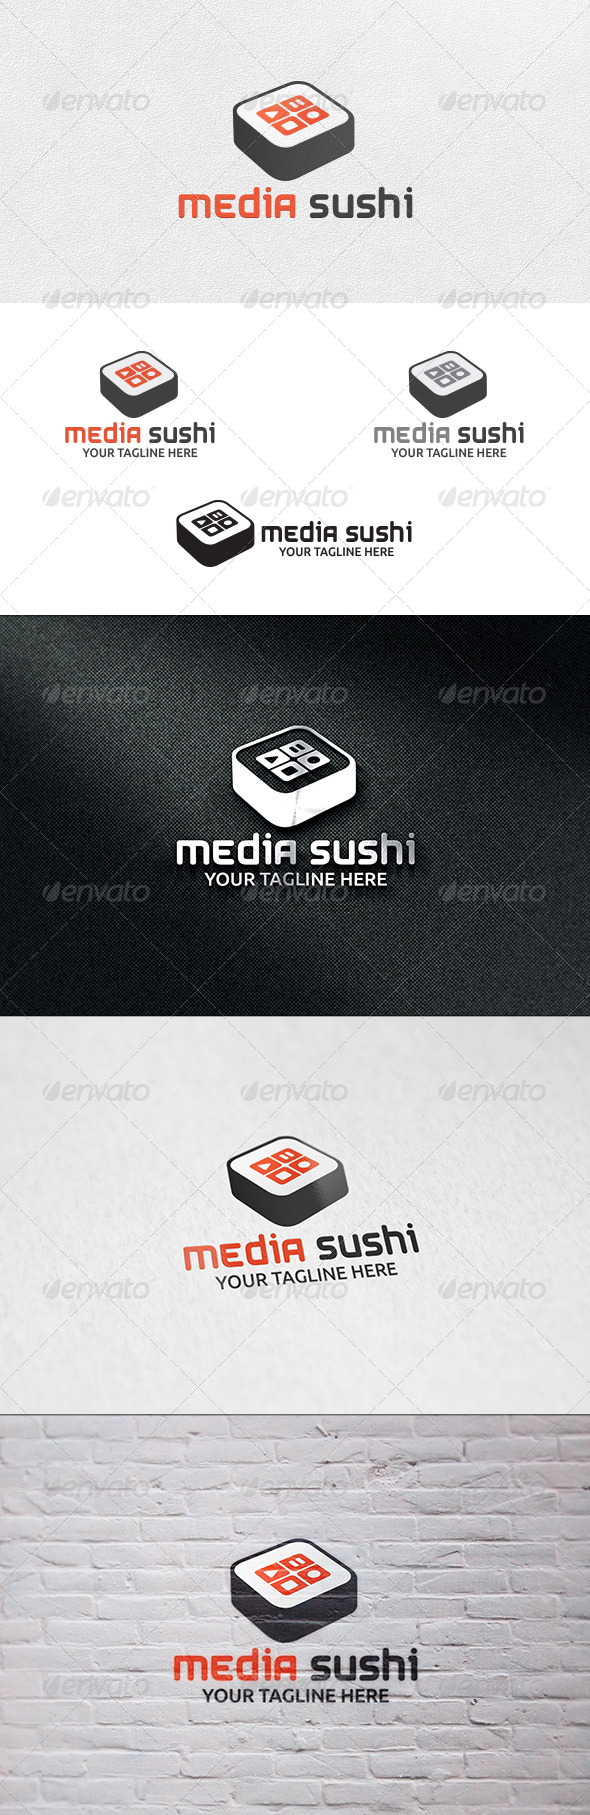 Media Sushi - Logo Template - Food Logo Templates